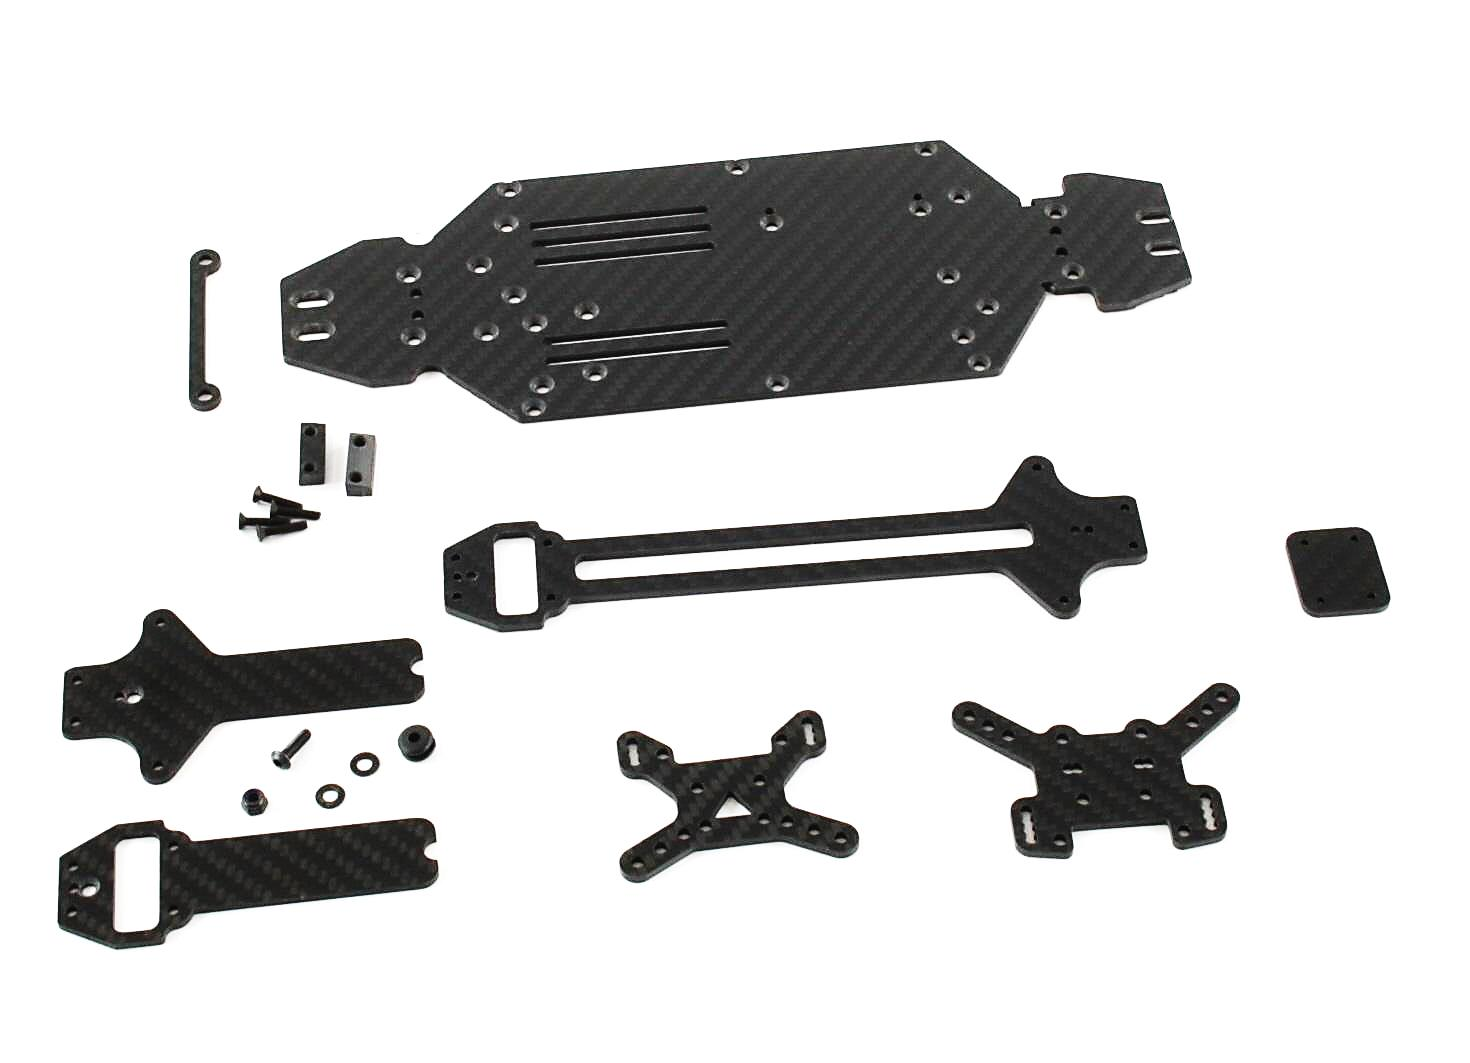 OneHobby-Tuning-Carbon-KIT-2,5mm-LC-Racing-Buggy-Monster Truck